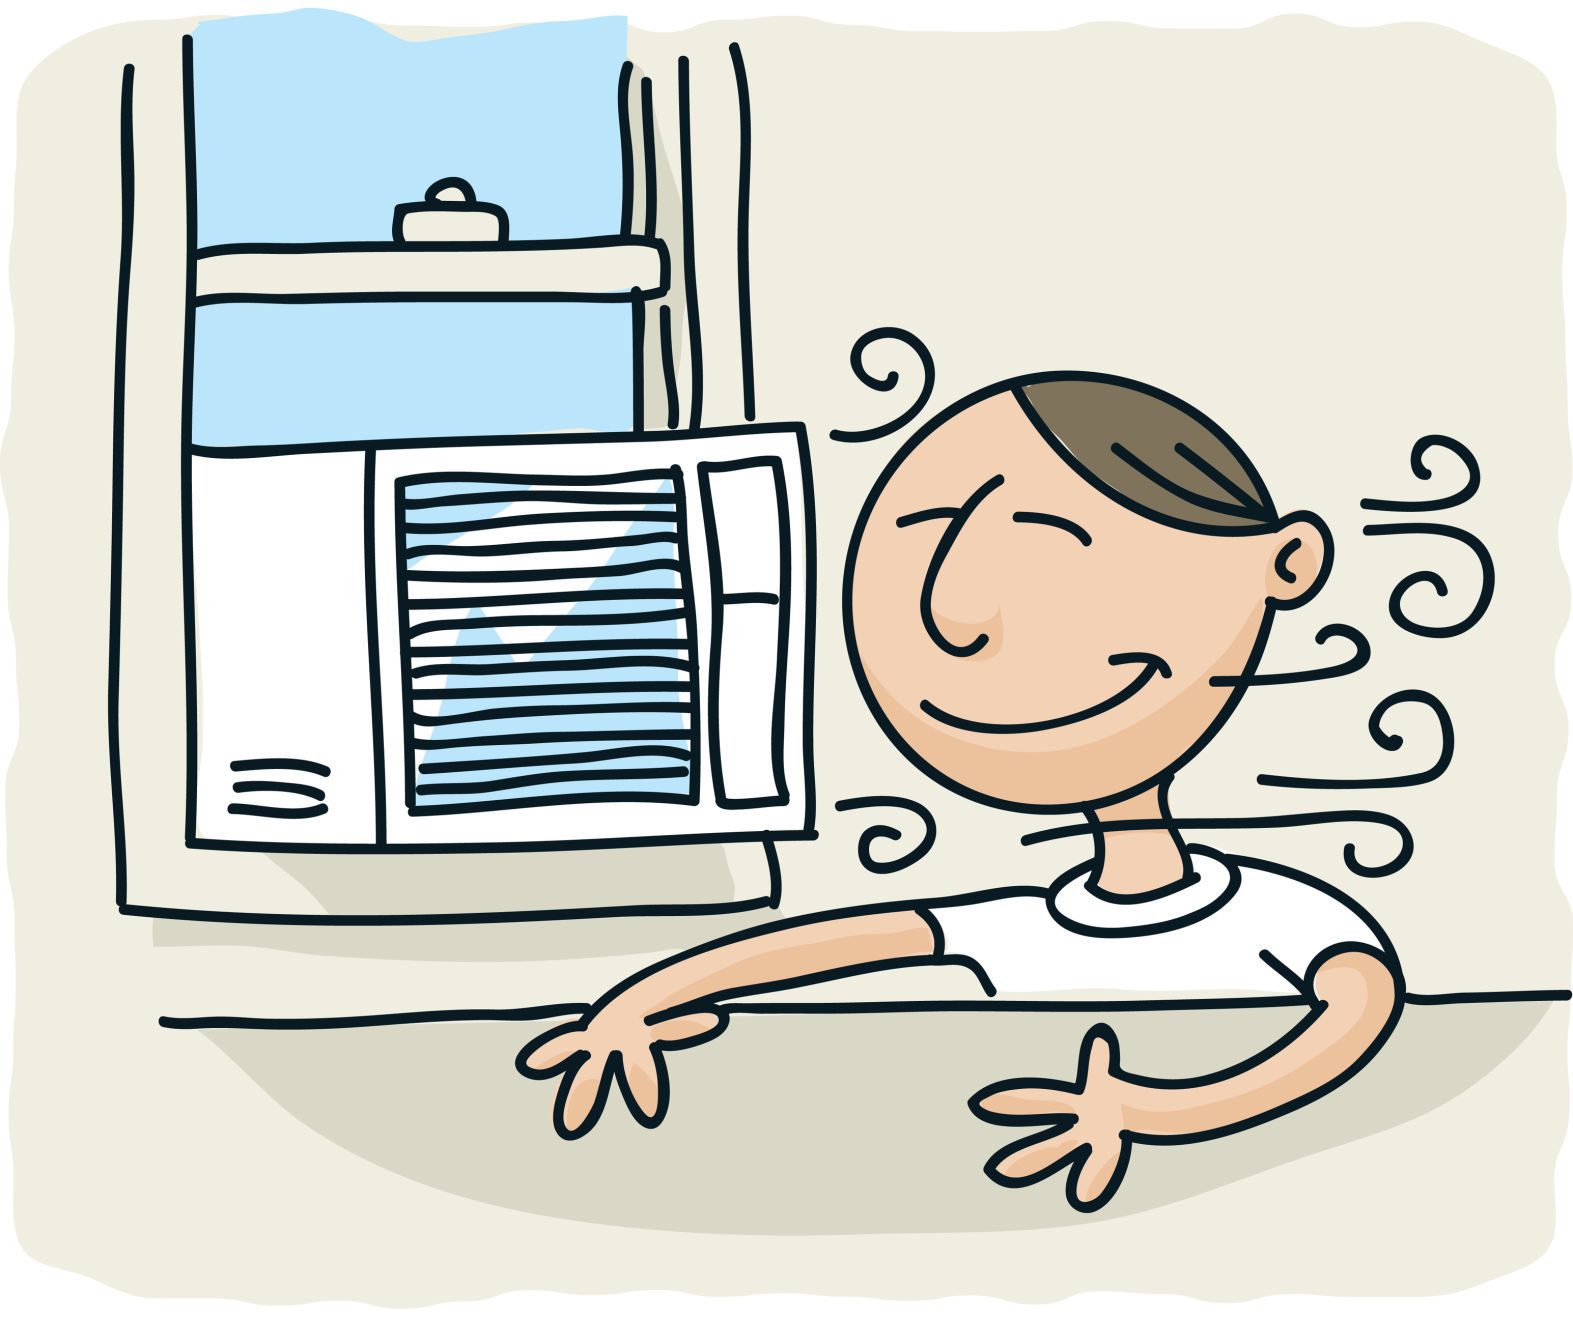 Large Image Of Air Conditioner Clipart.